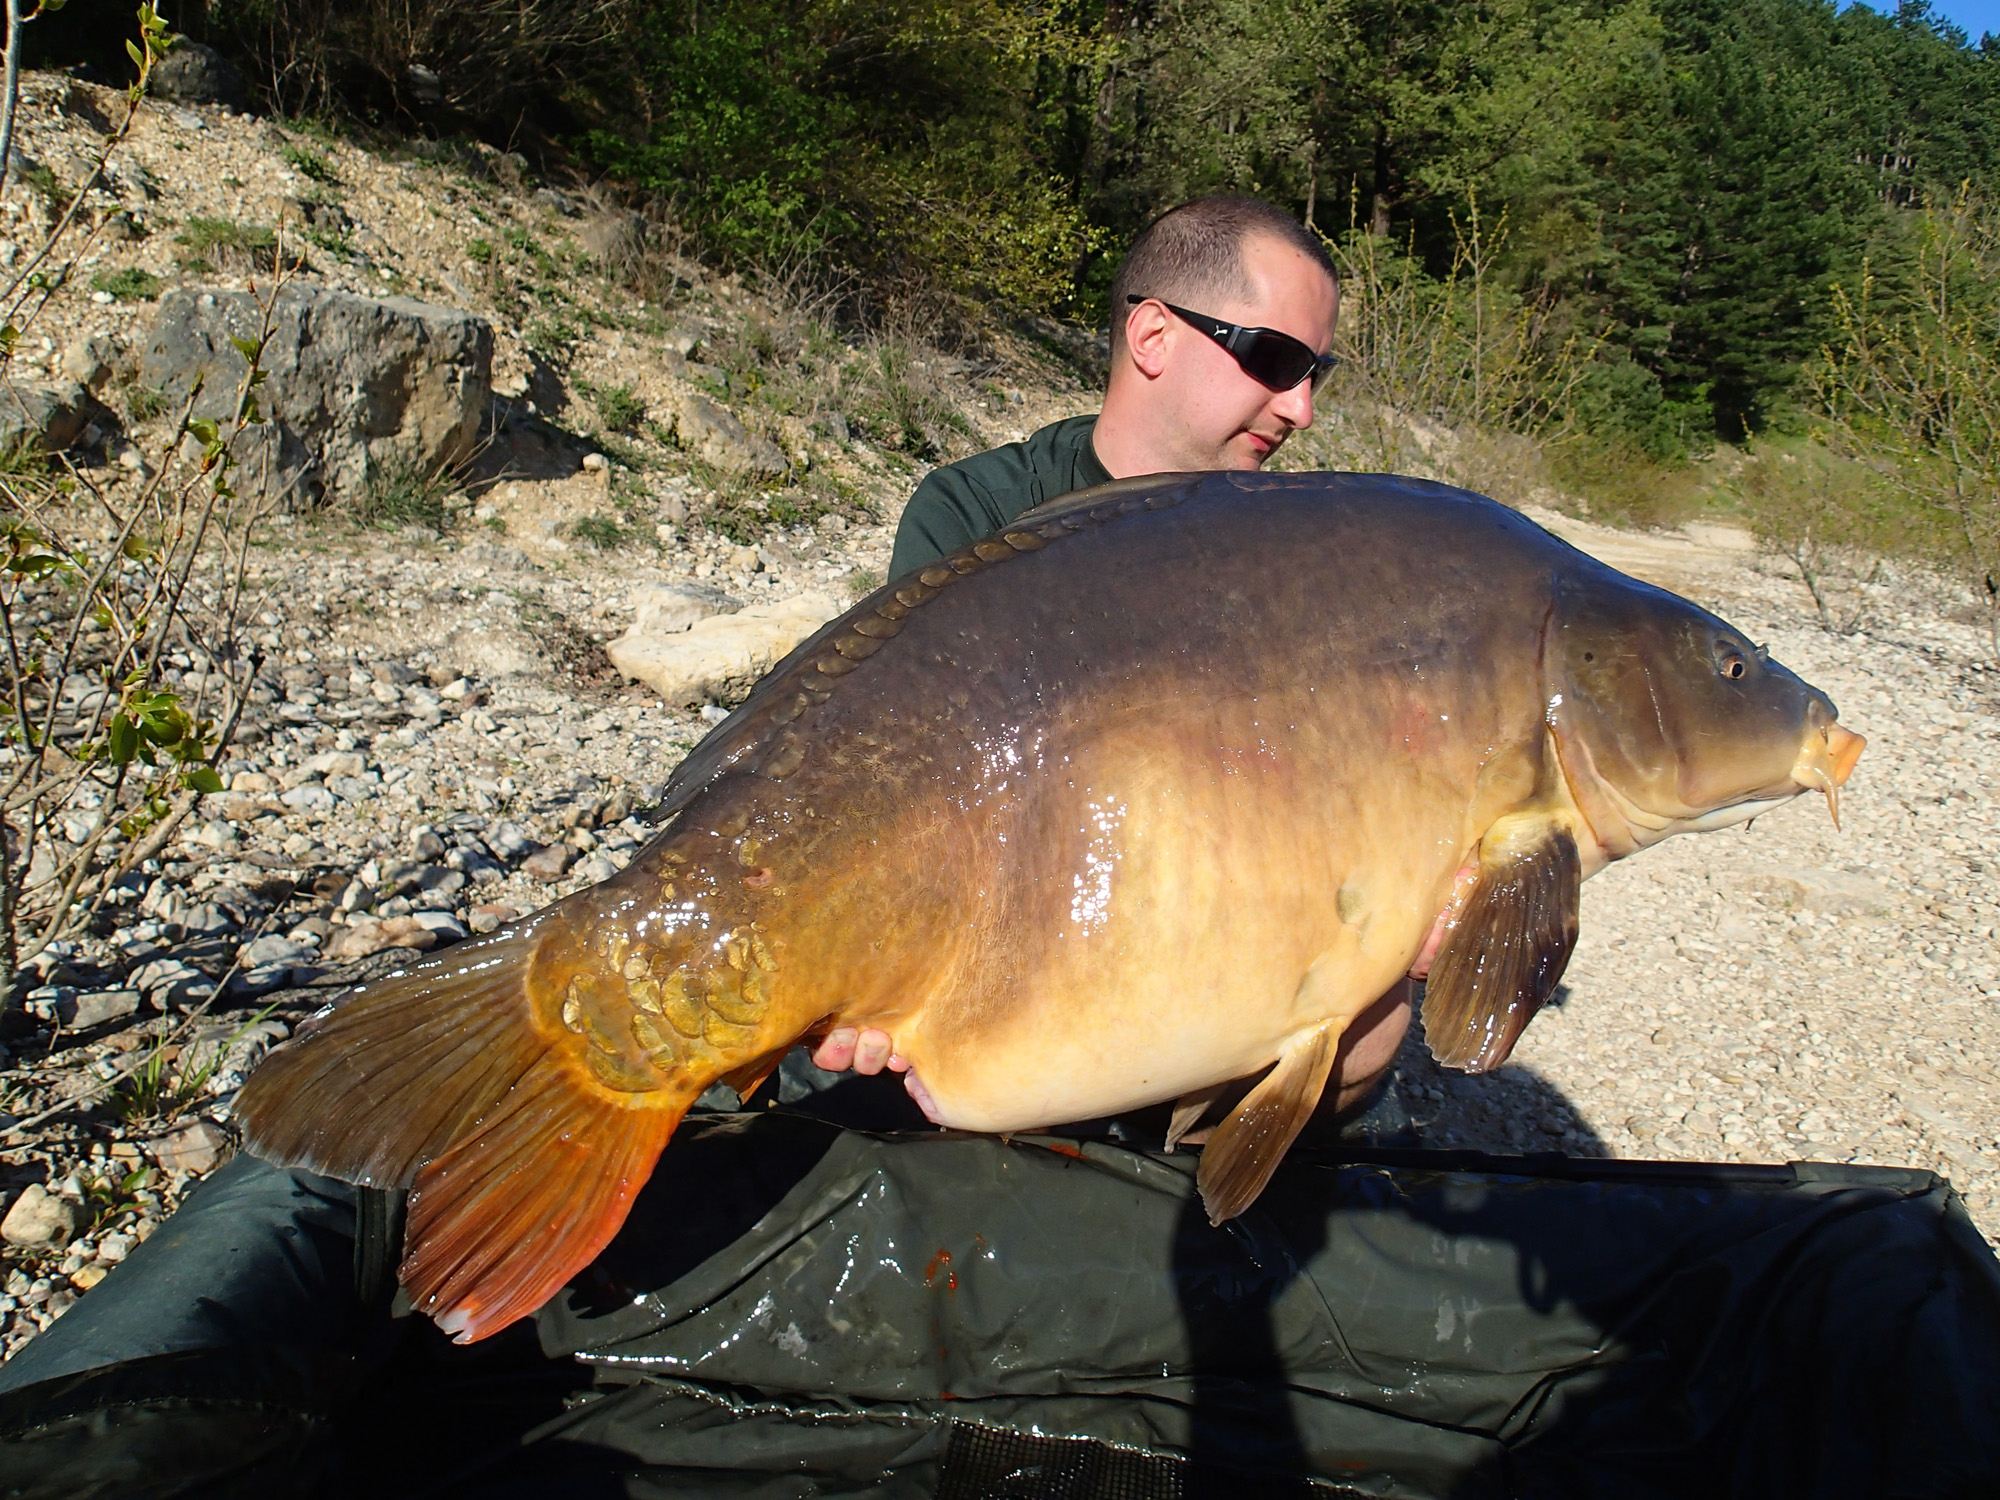 http://www.starbaits.com/fichiers/images/team/gallery/COLLET_Jerome/9 Jérôme Collet.JPG